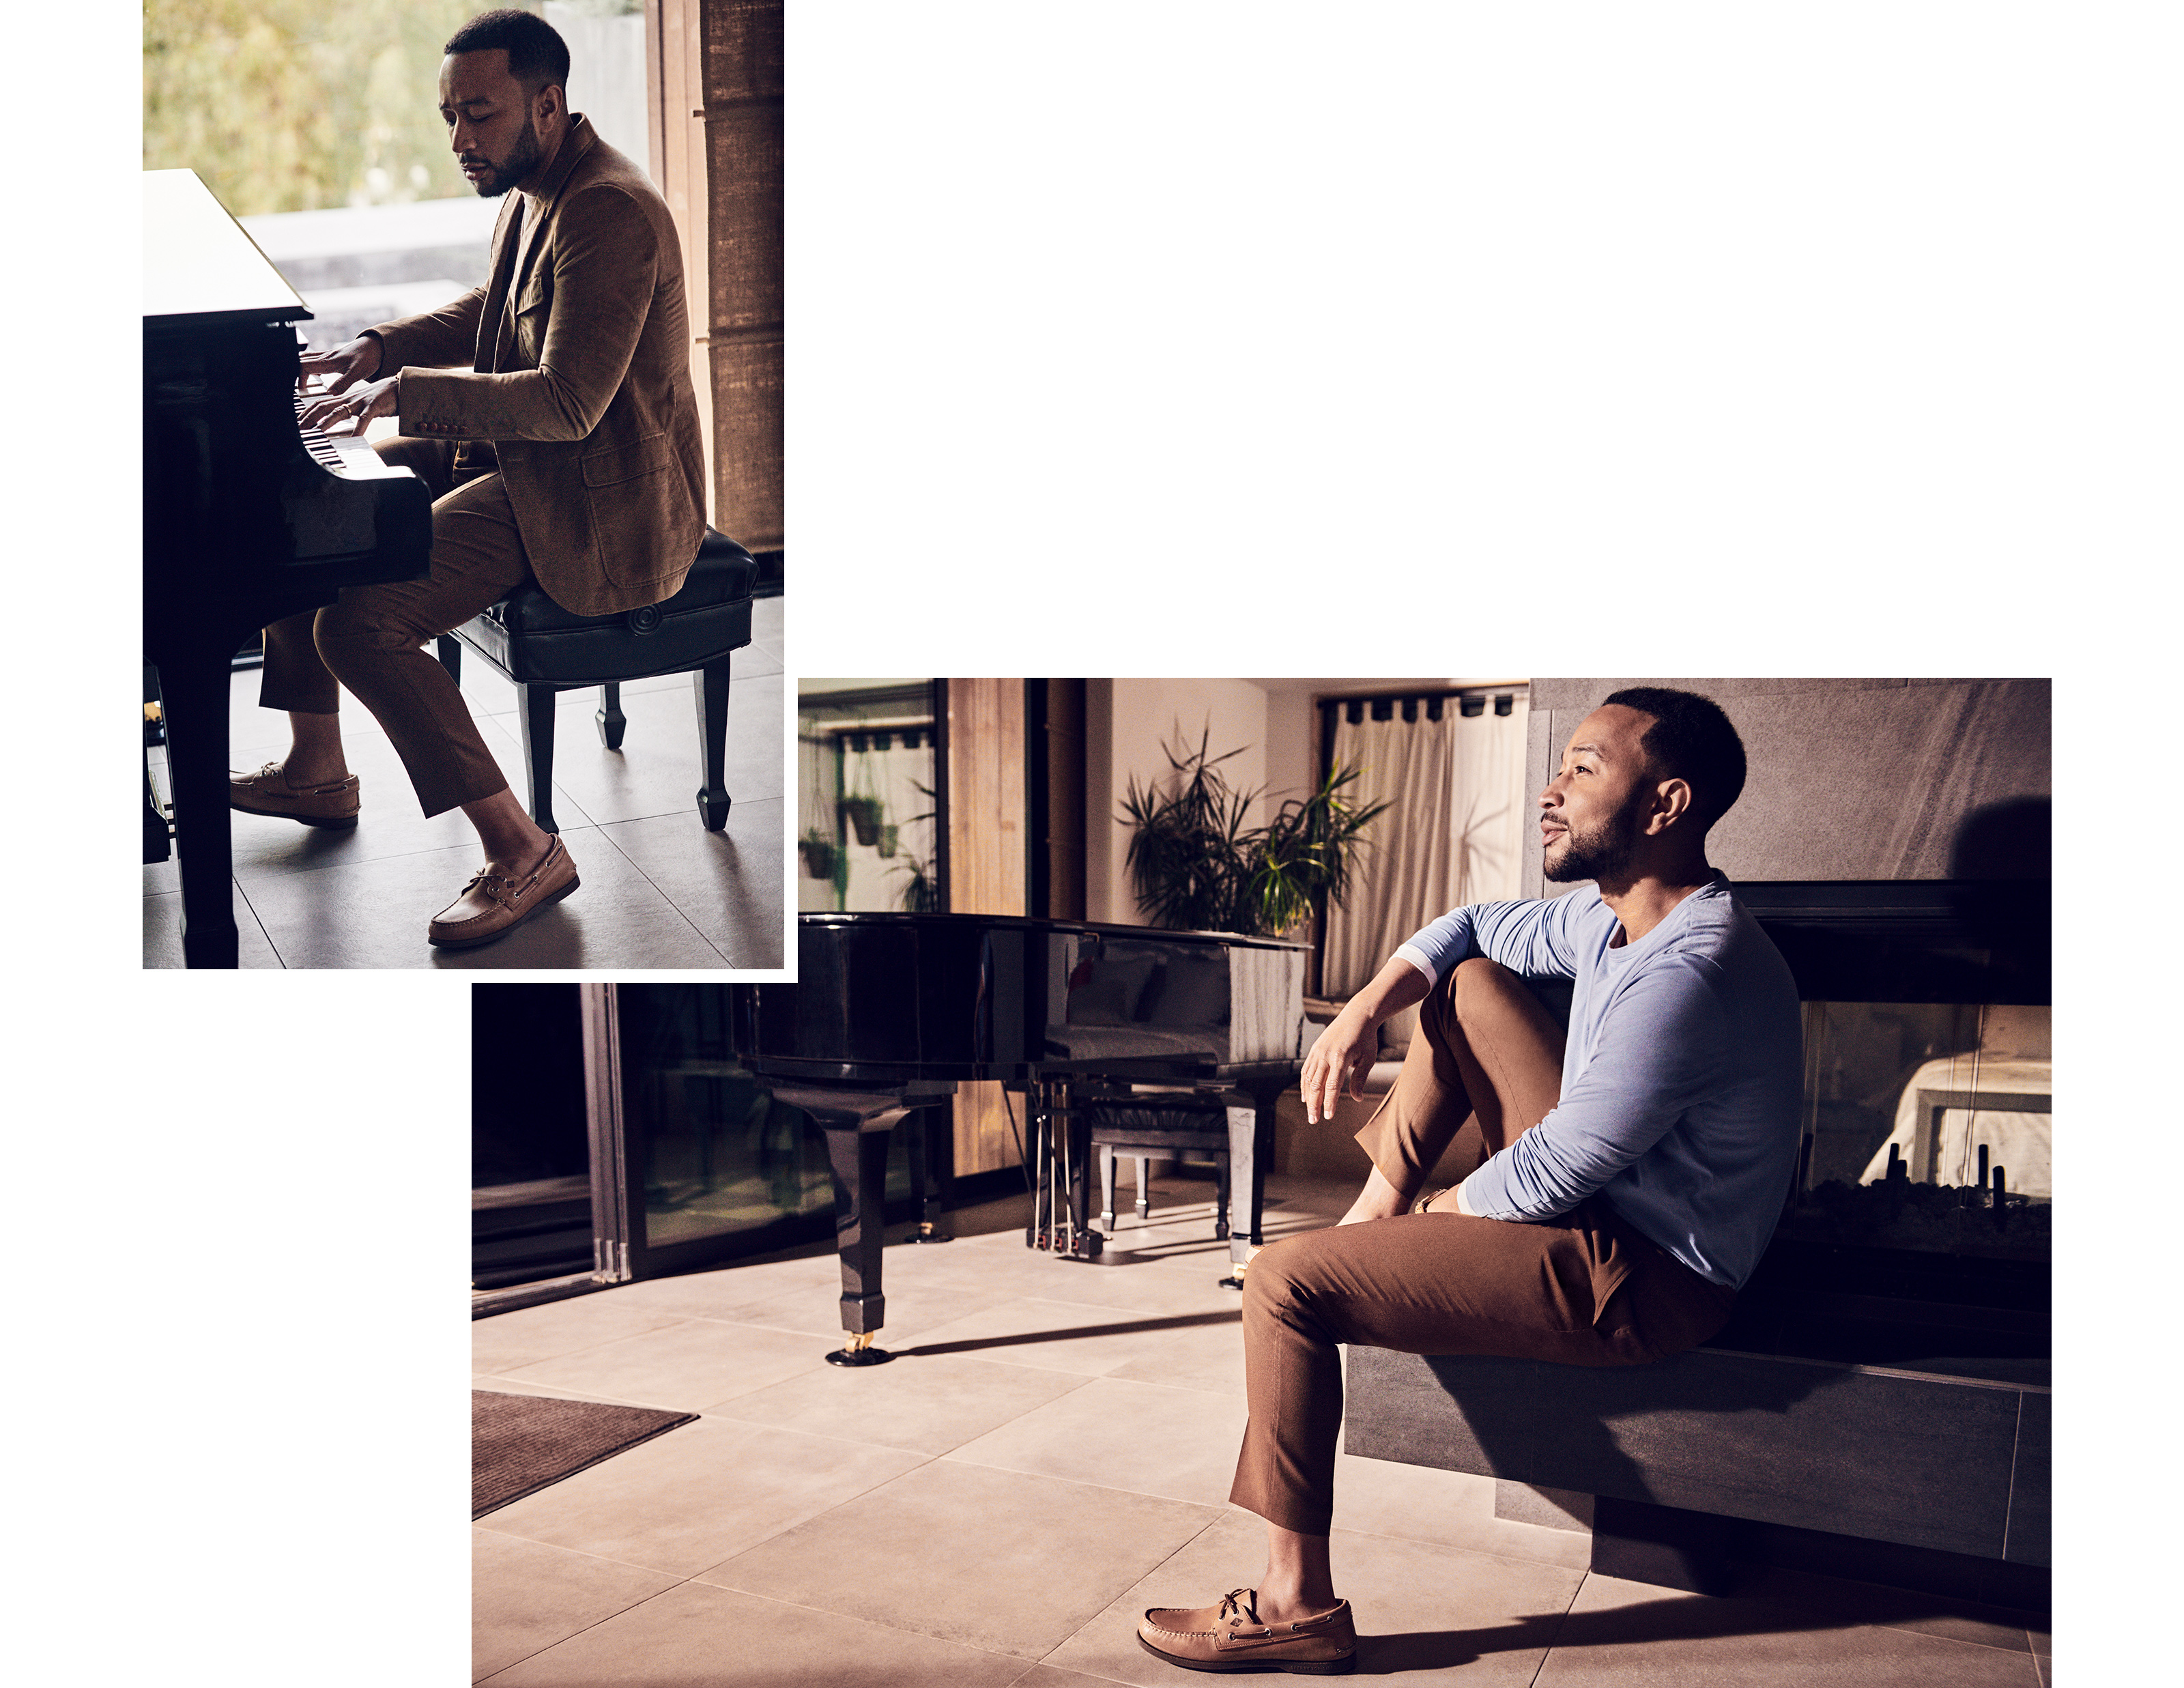 John Legend playing the piano, wearing Sperry Cloud Authentic Original Boat Shoe.